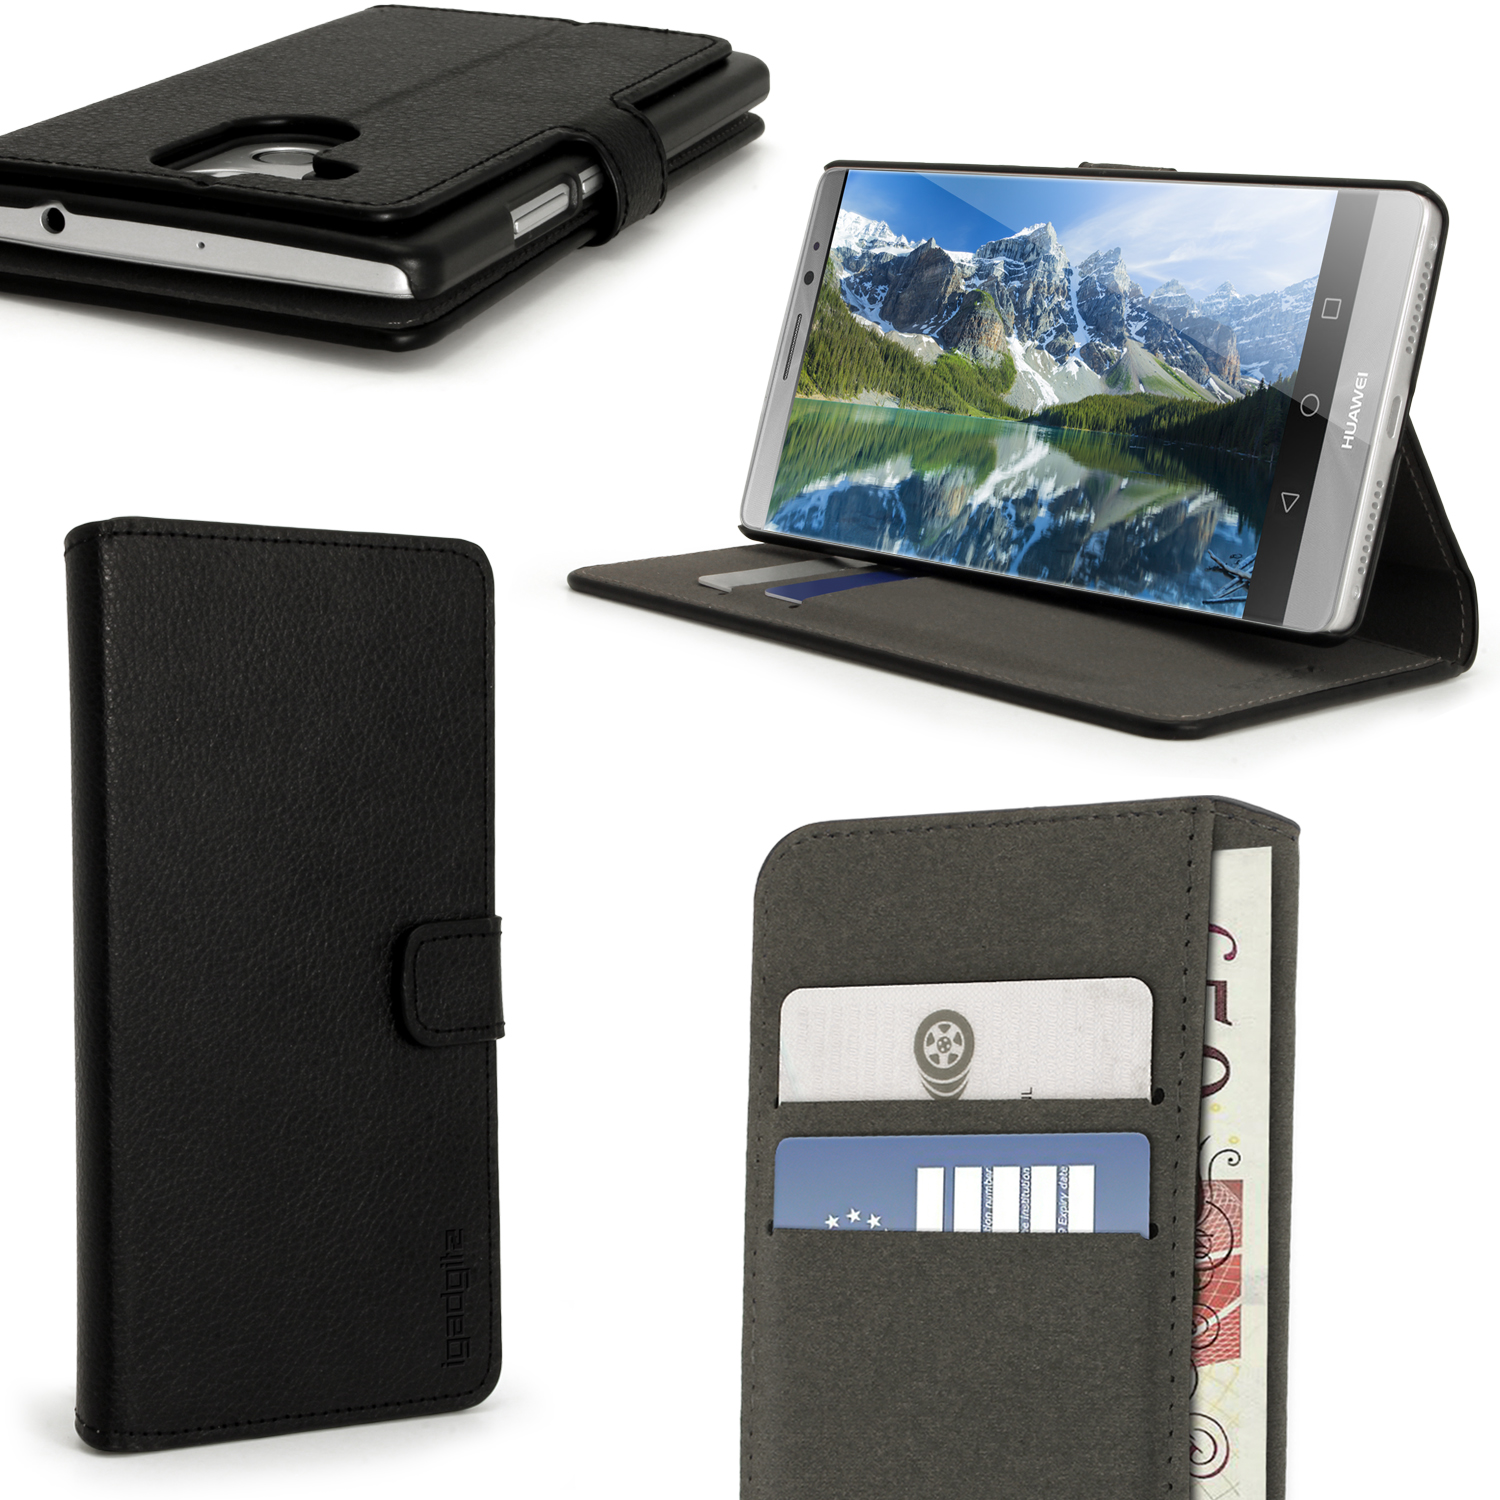 iGadgitz Premium Wallet Flip PU Leather Case Cover for Huawei Mate 8 With Stand + Card Slots + Screen Protector